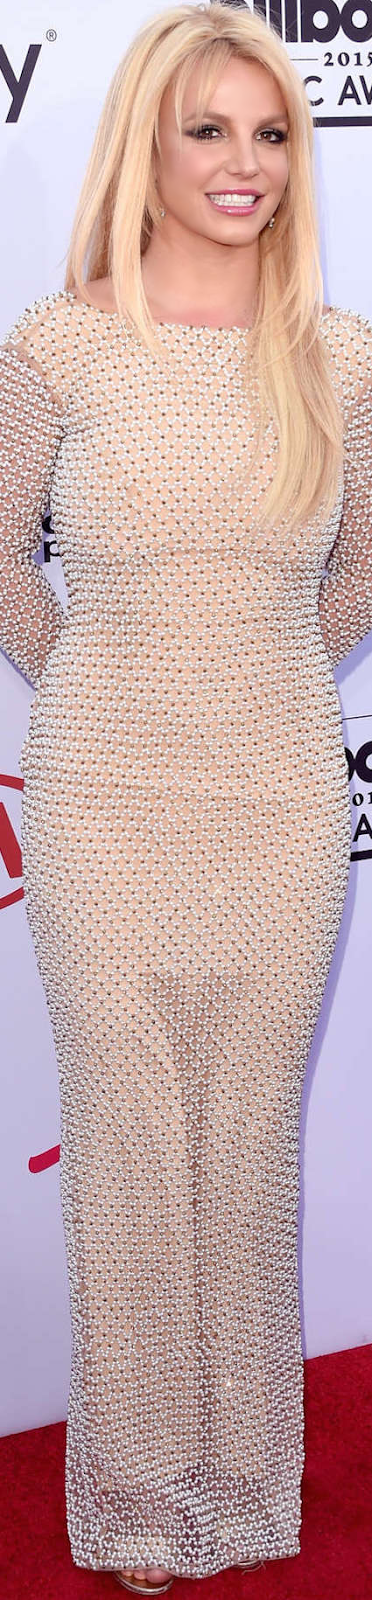 2015 Billboard Awards Britney Spears Red Carpet